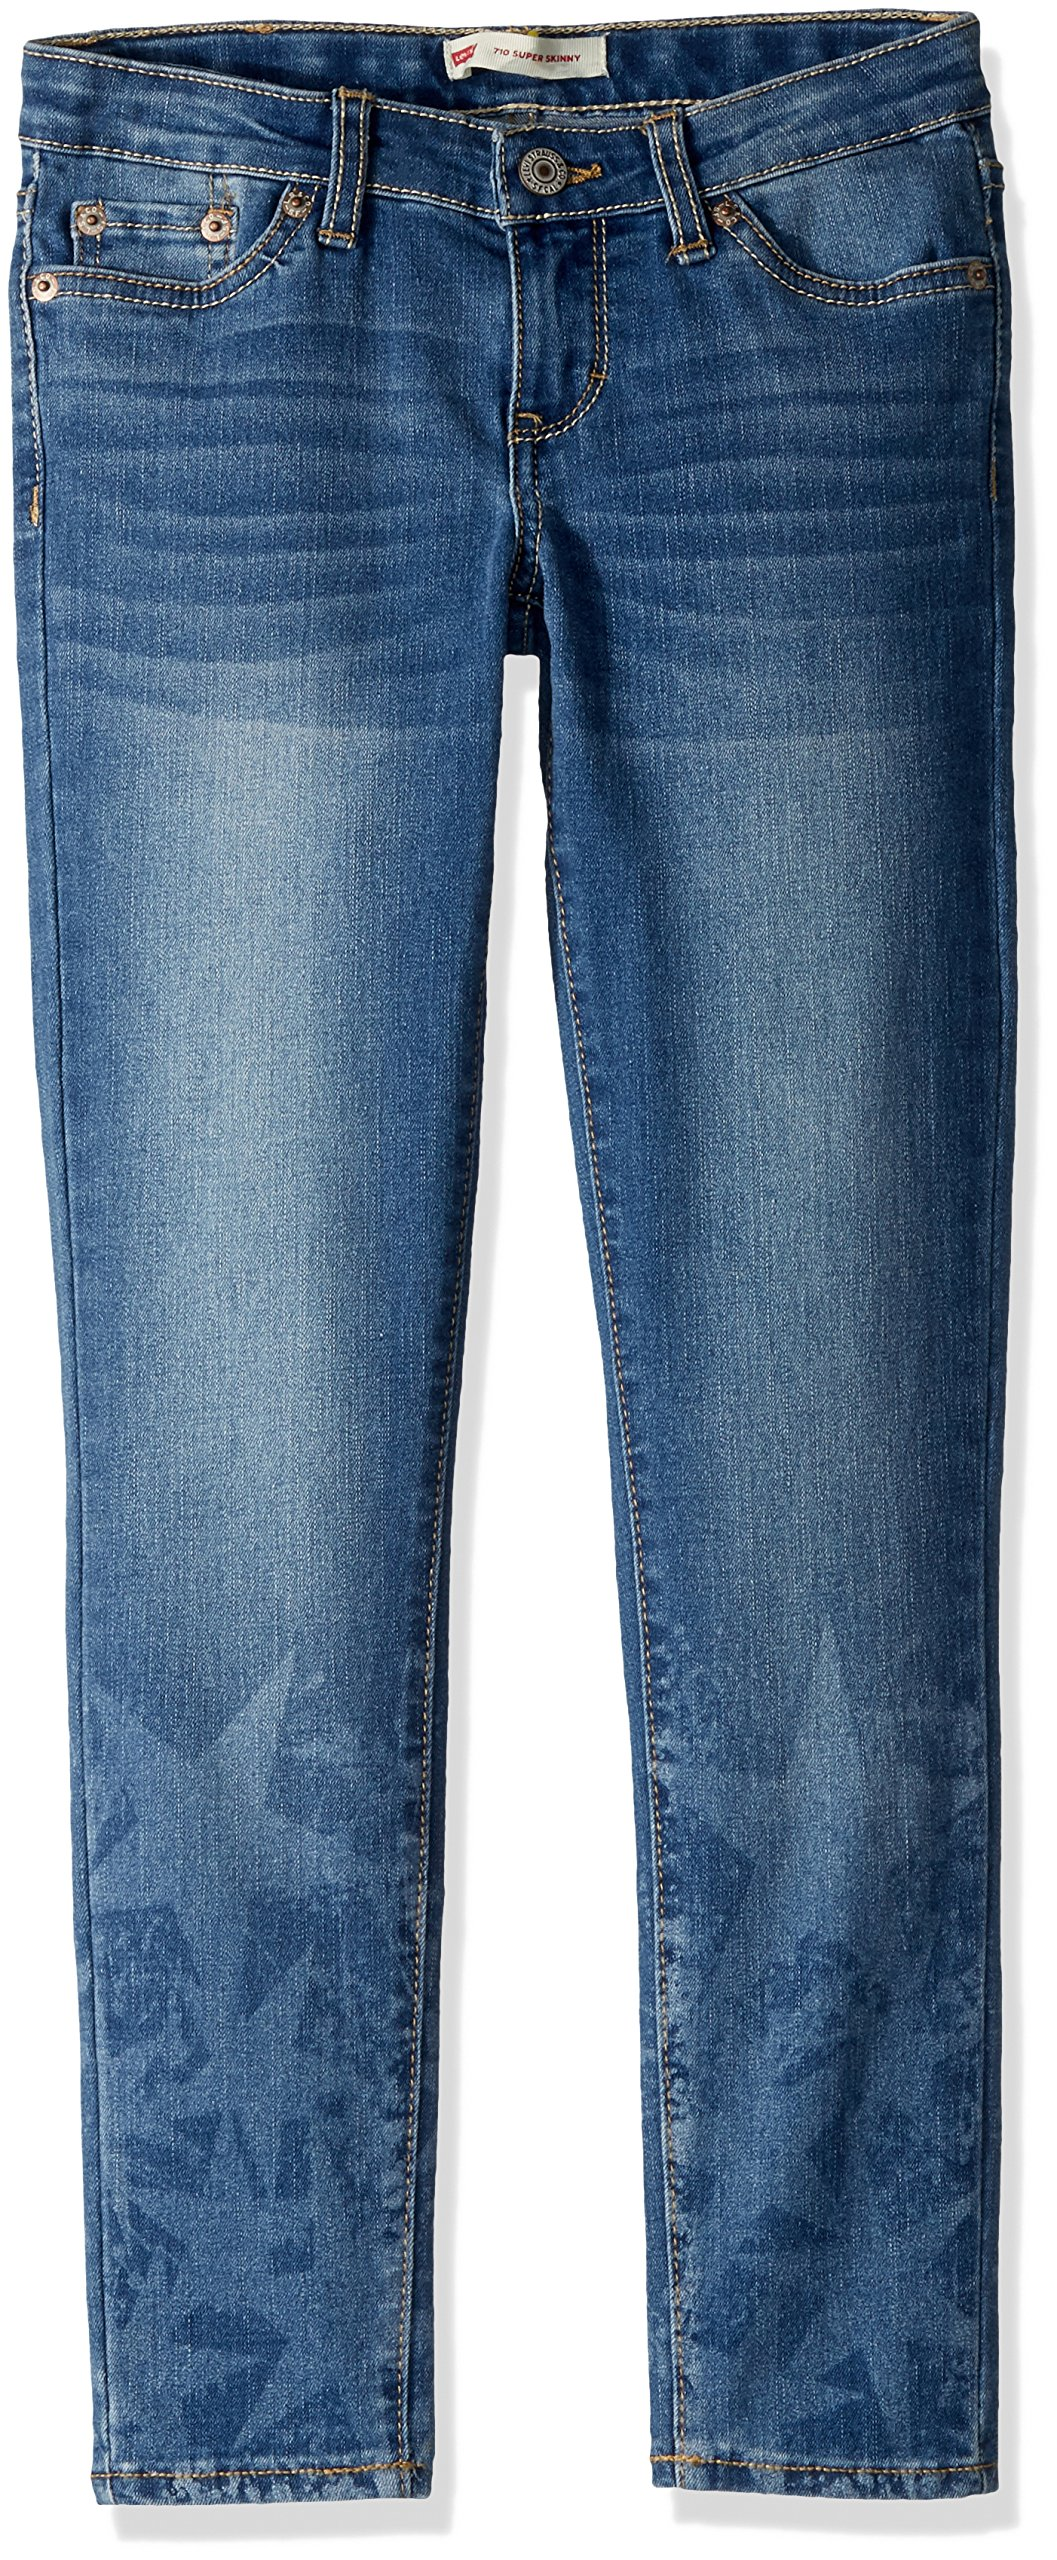 95513ef6fa7 Best Rated in Girls  Jeans   Helpful Customer Reviews - Amazon.com